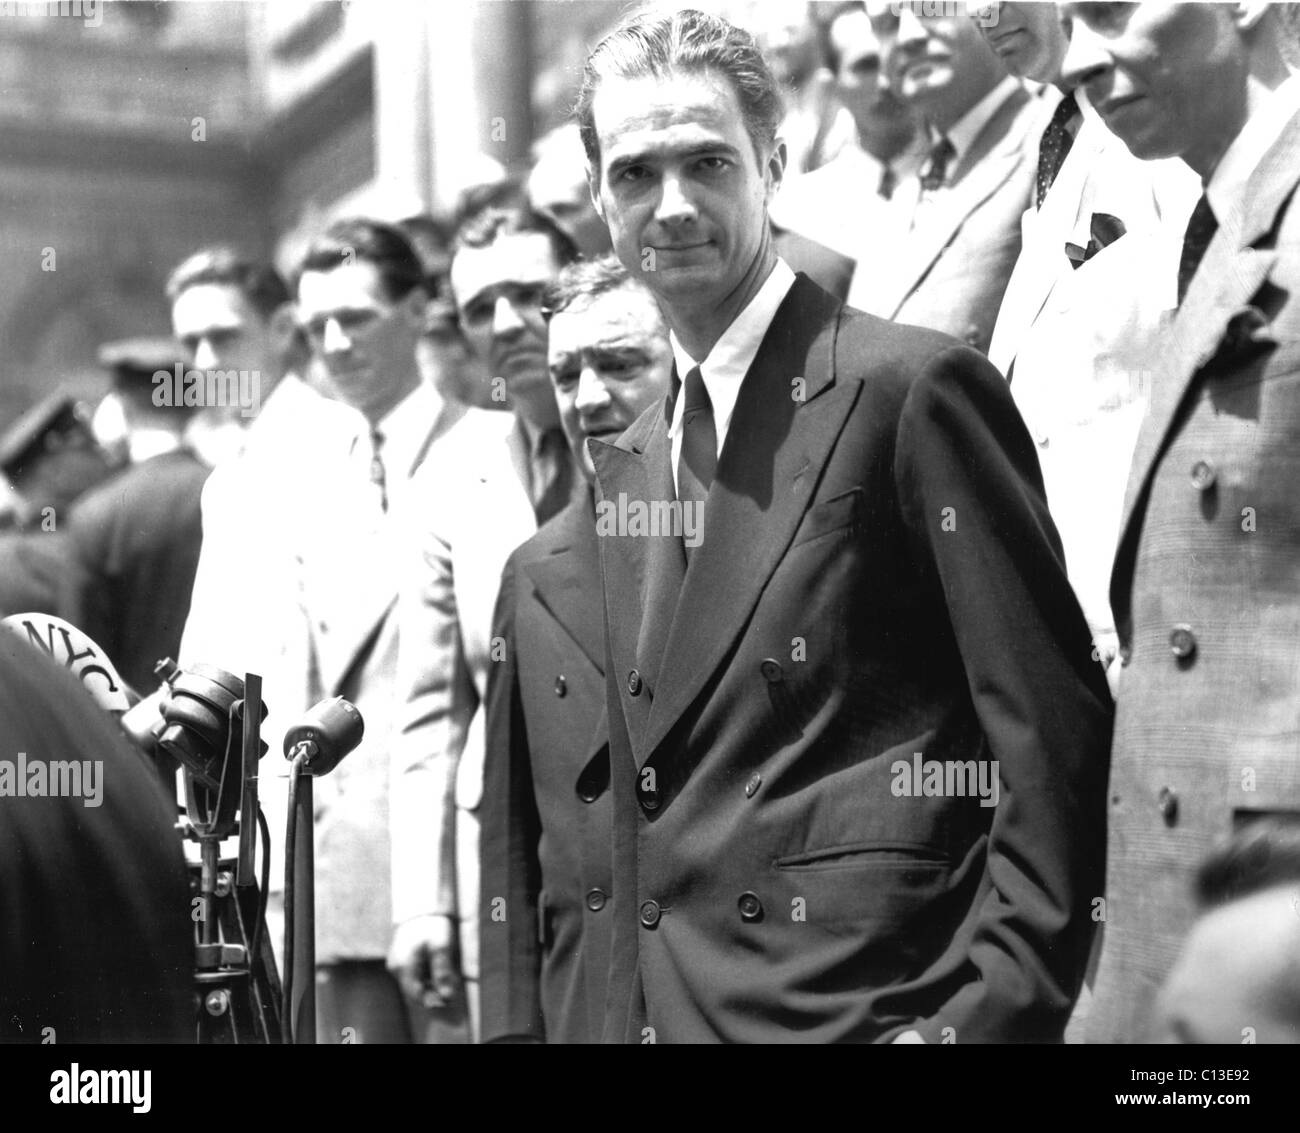 Howard Hughes honored in NYC for his round the world flight of 3 days, 19 hours, 17 mins. Mayor LaGuardia behind, - Stock Image